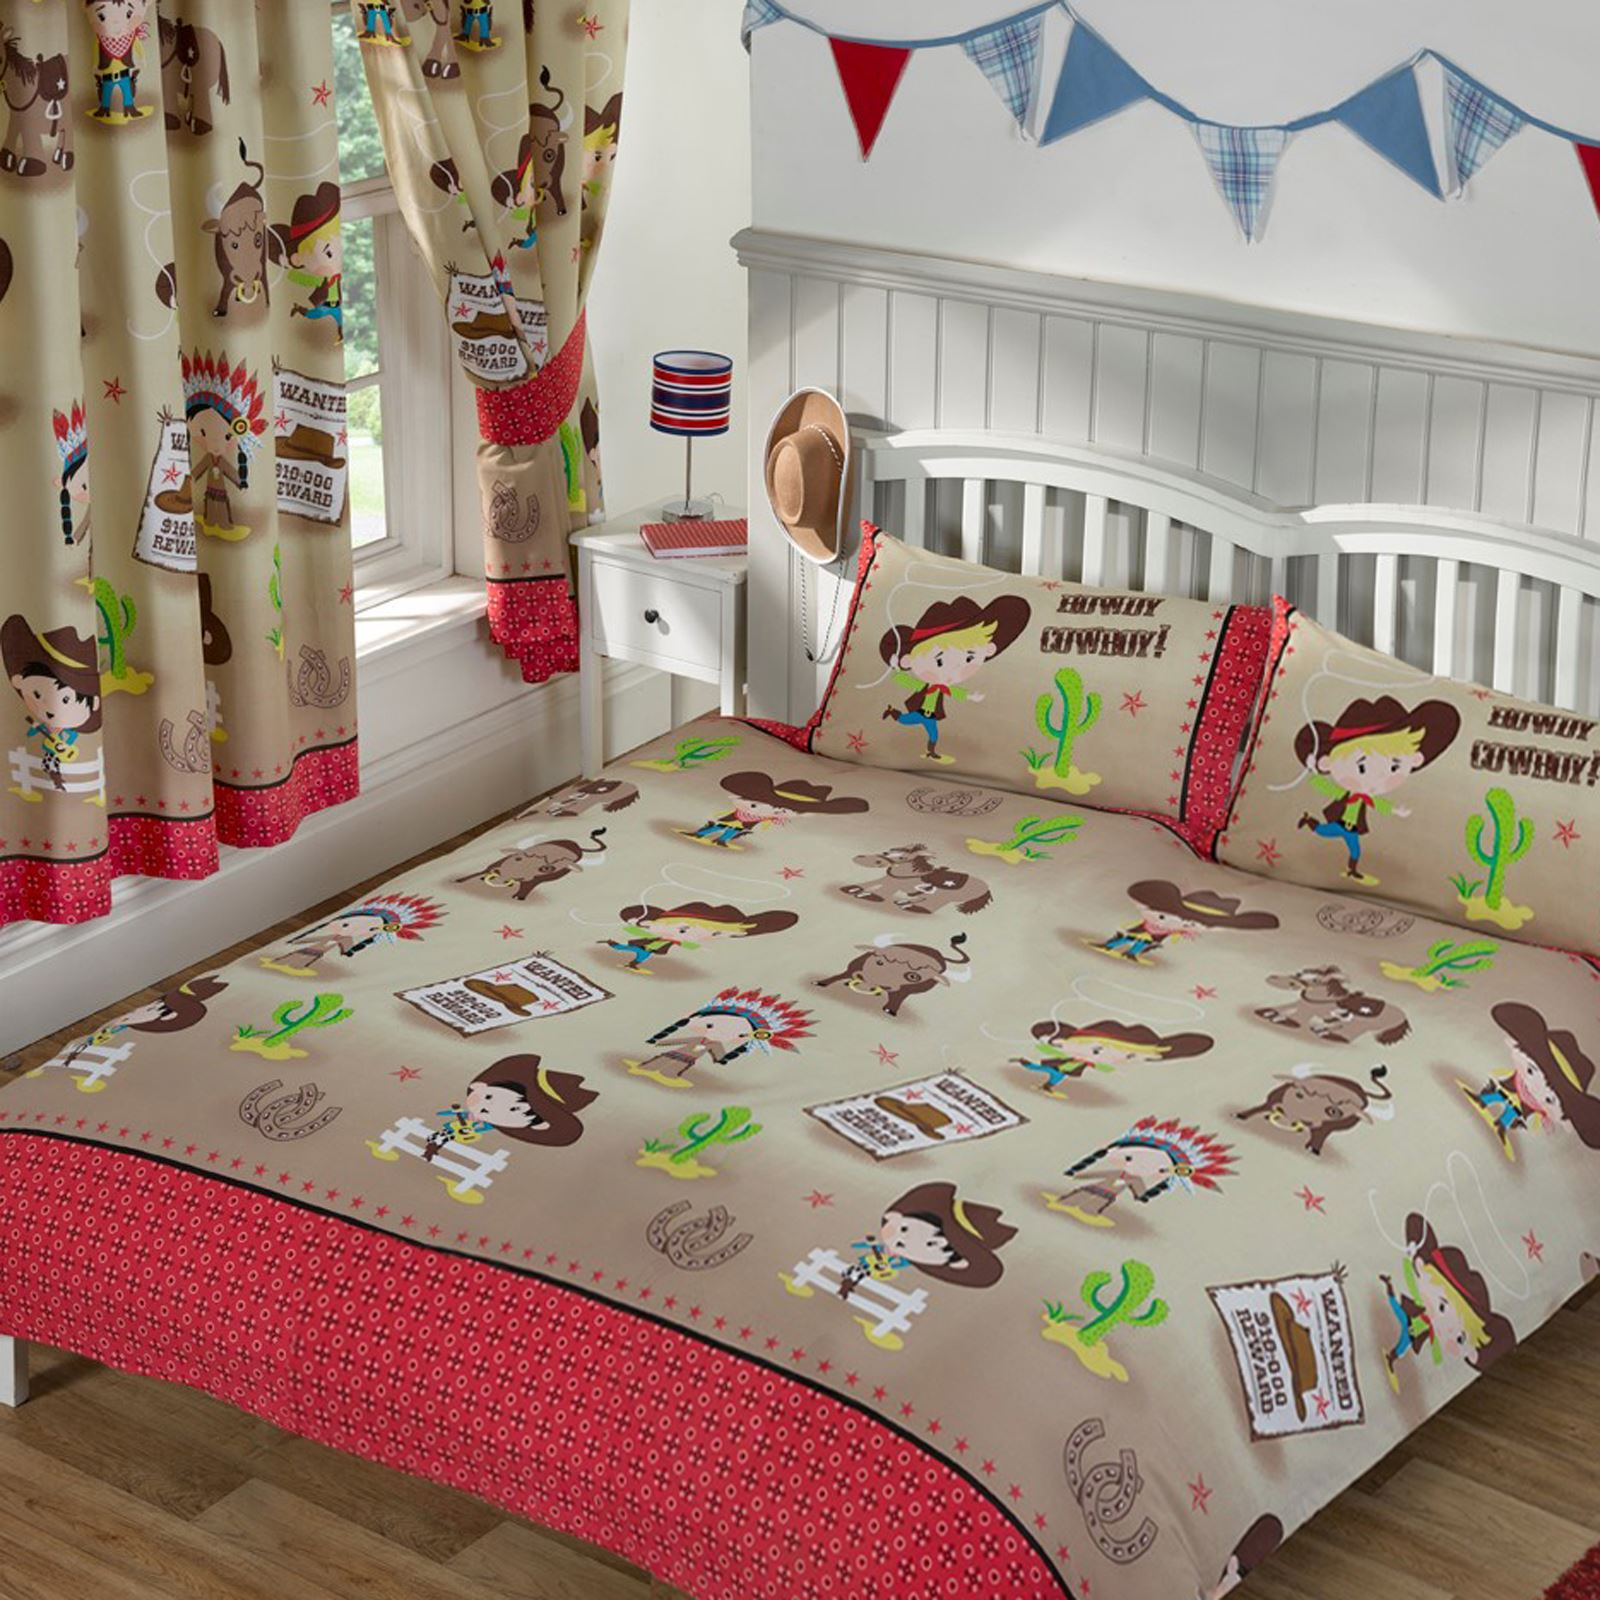 exklusiv doppelbett bettw sche sets kinder designs f r jungen und m dchen ebay. Black Bedroom Furniture Sets. Home Design Ideas